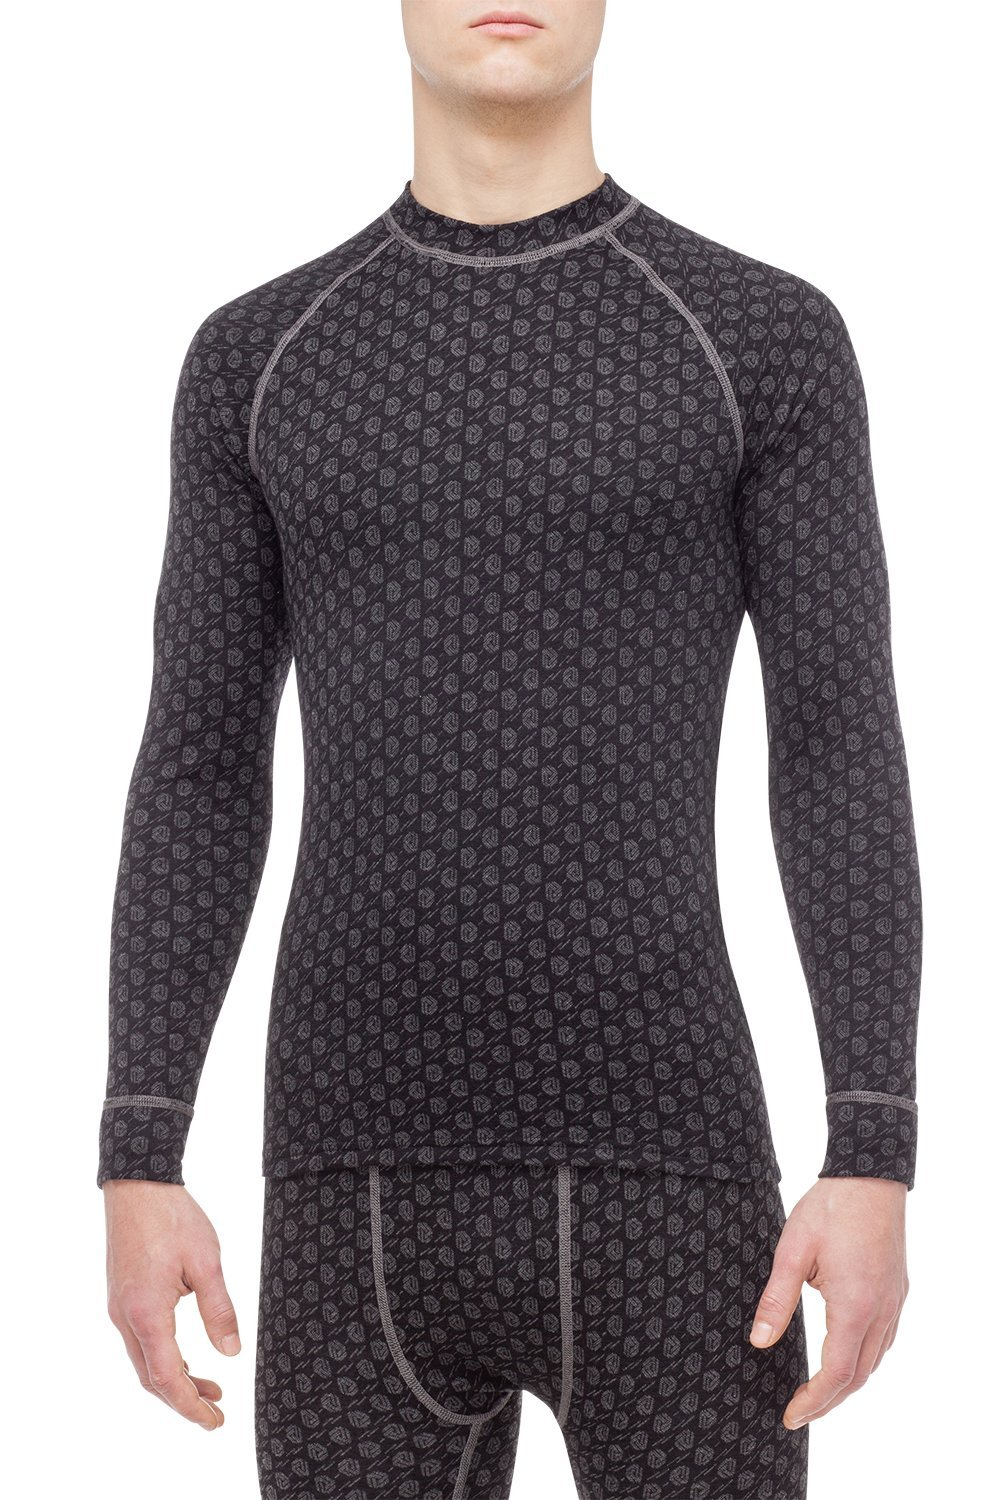 Thermowave Herren Xtreme Long Sleeve Jersey